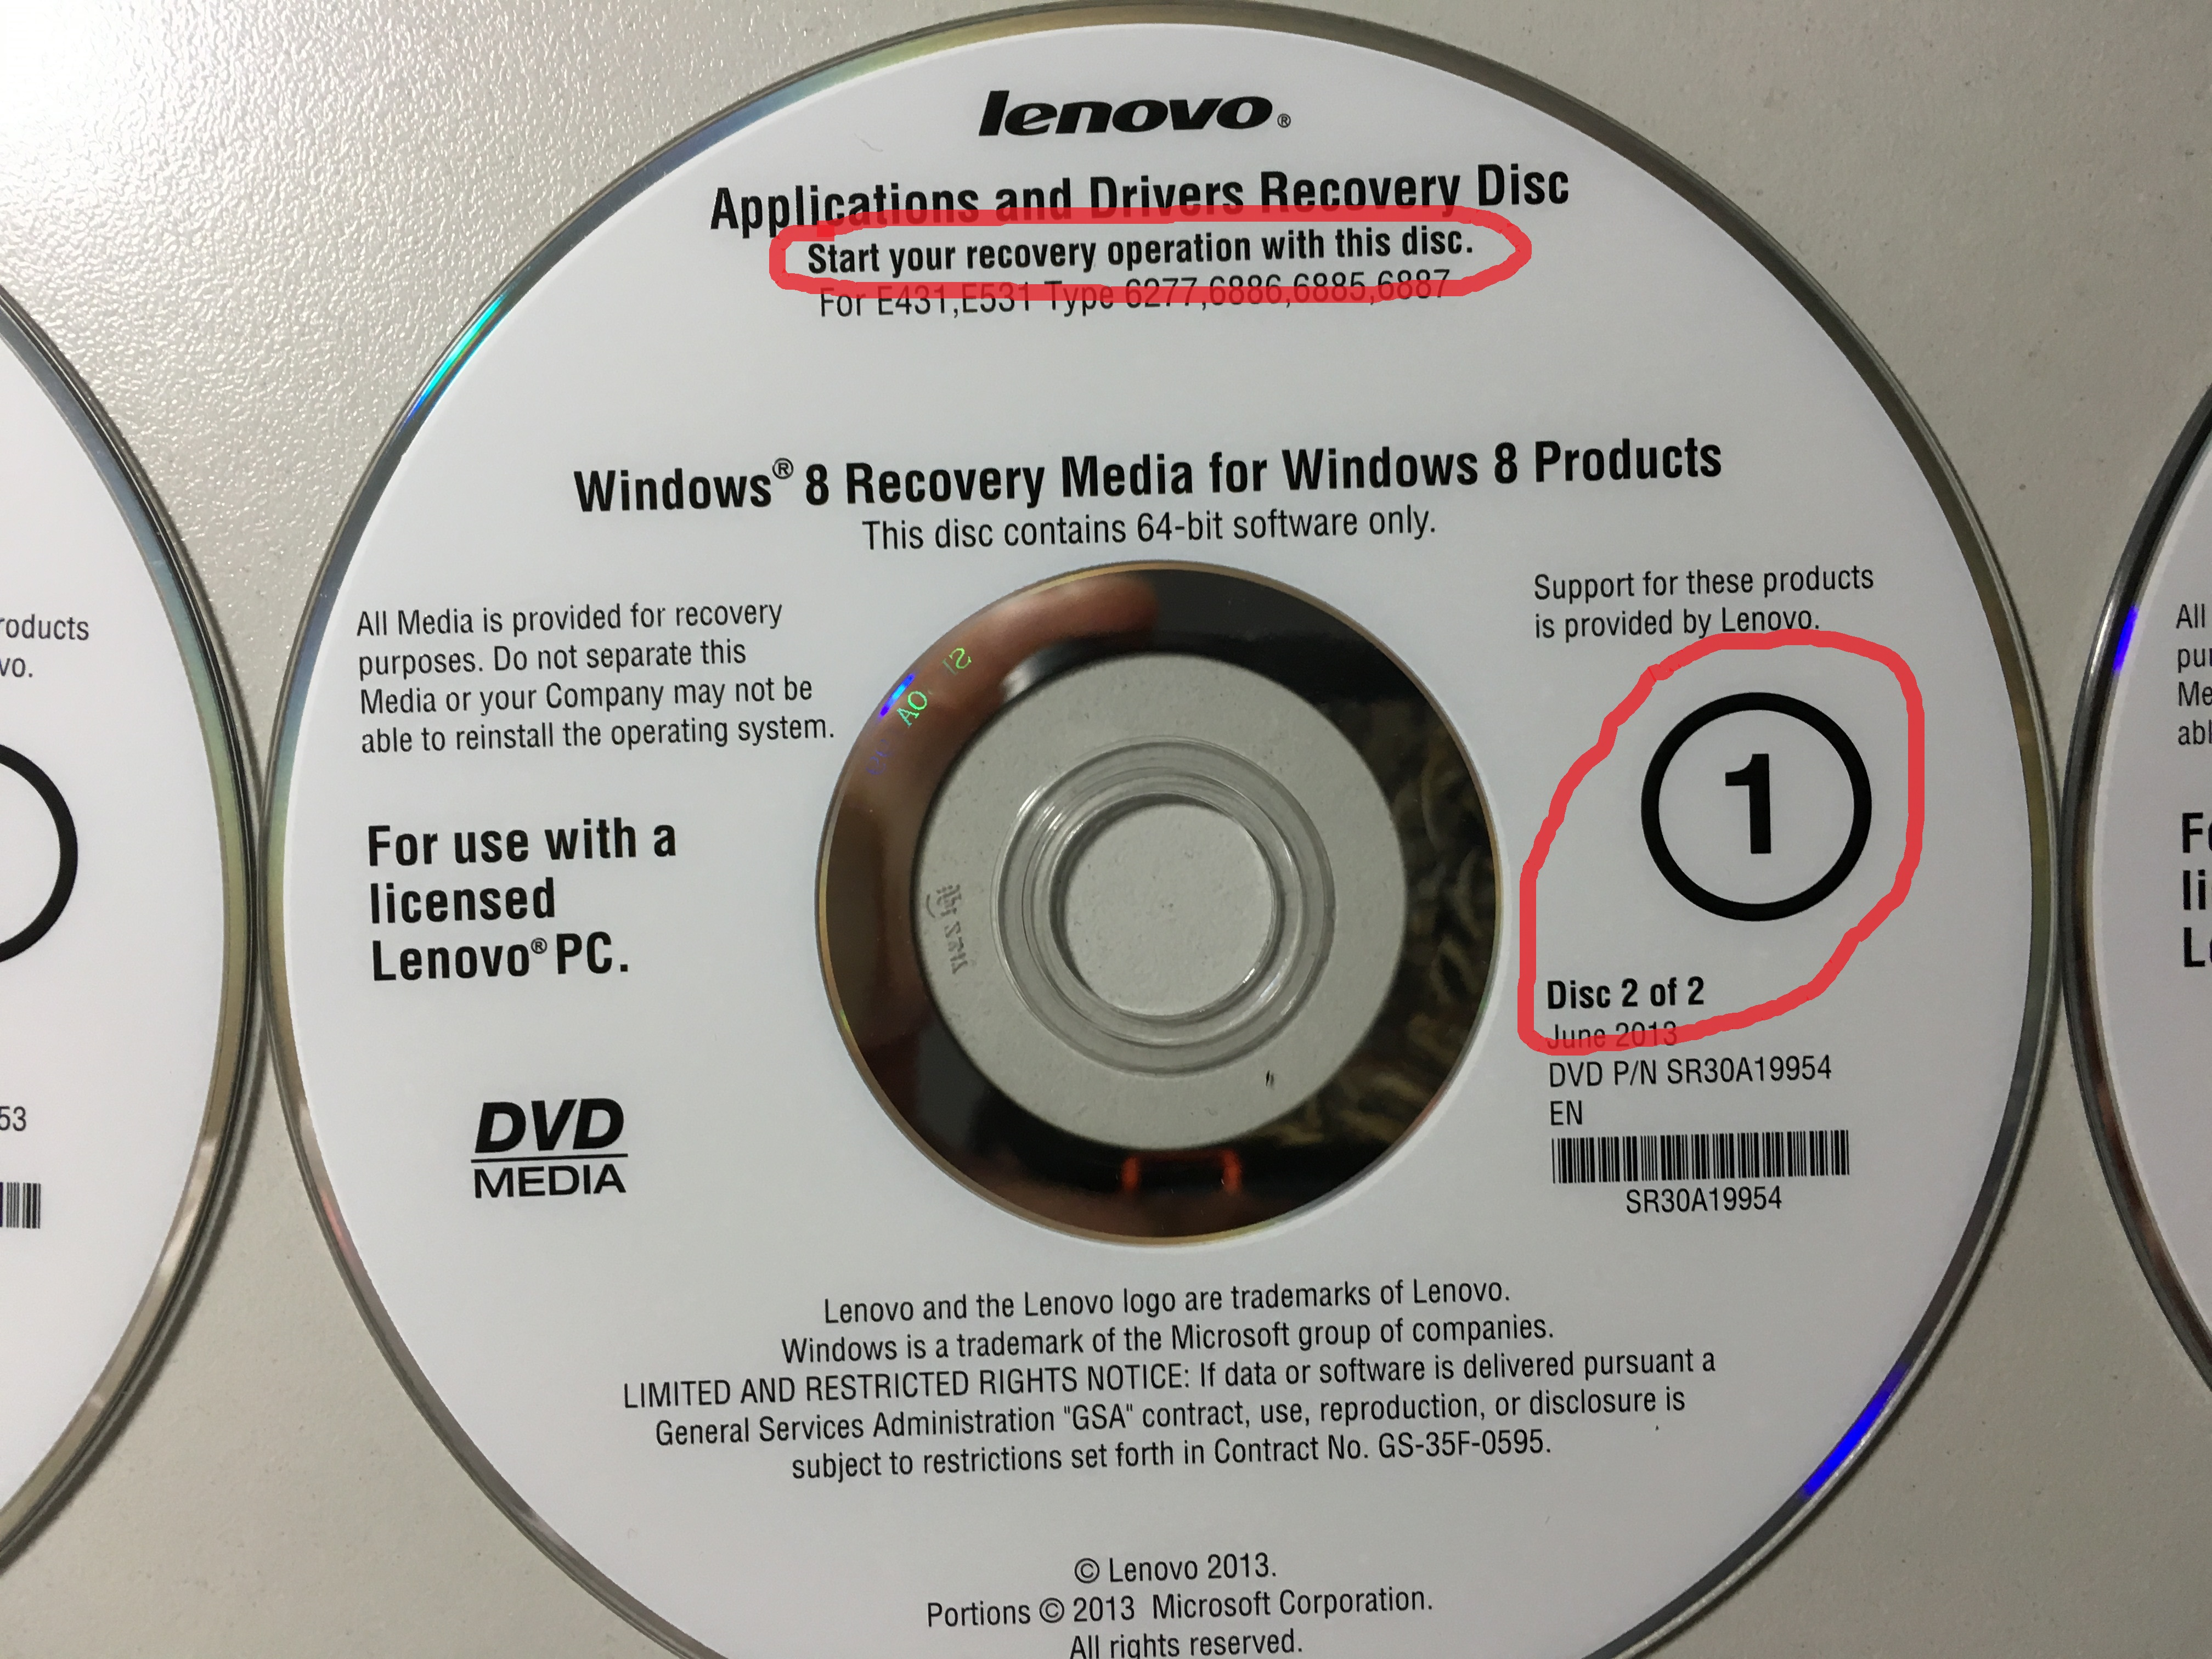 how to create recovery disk in lenovo laptop